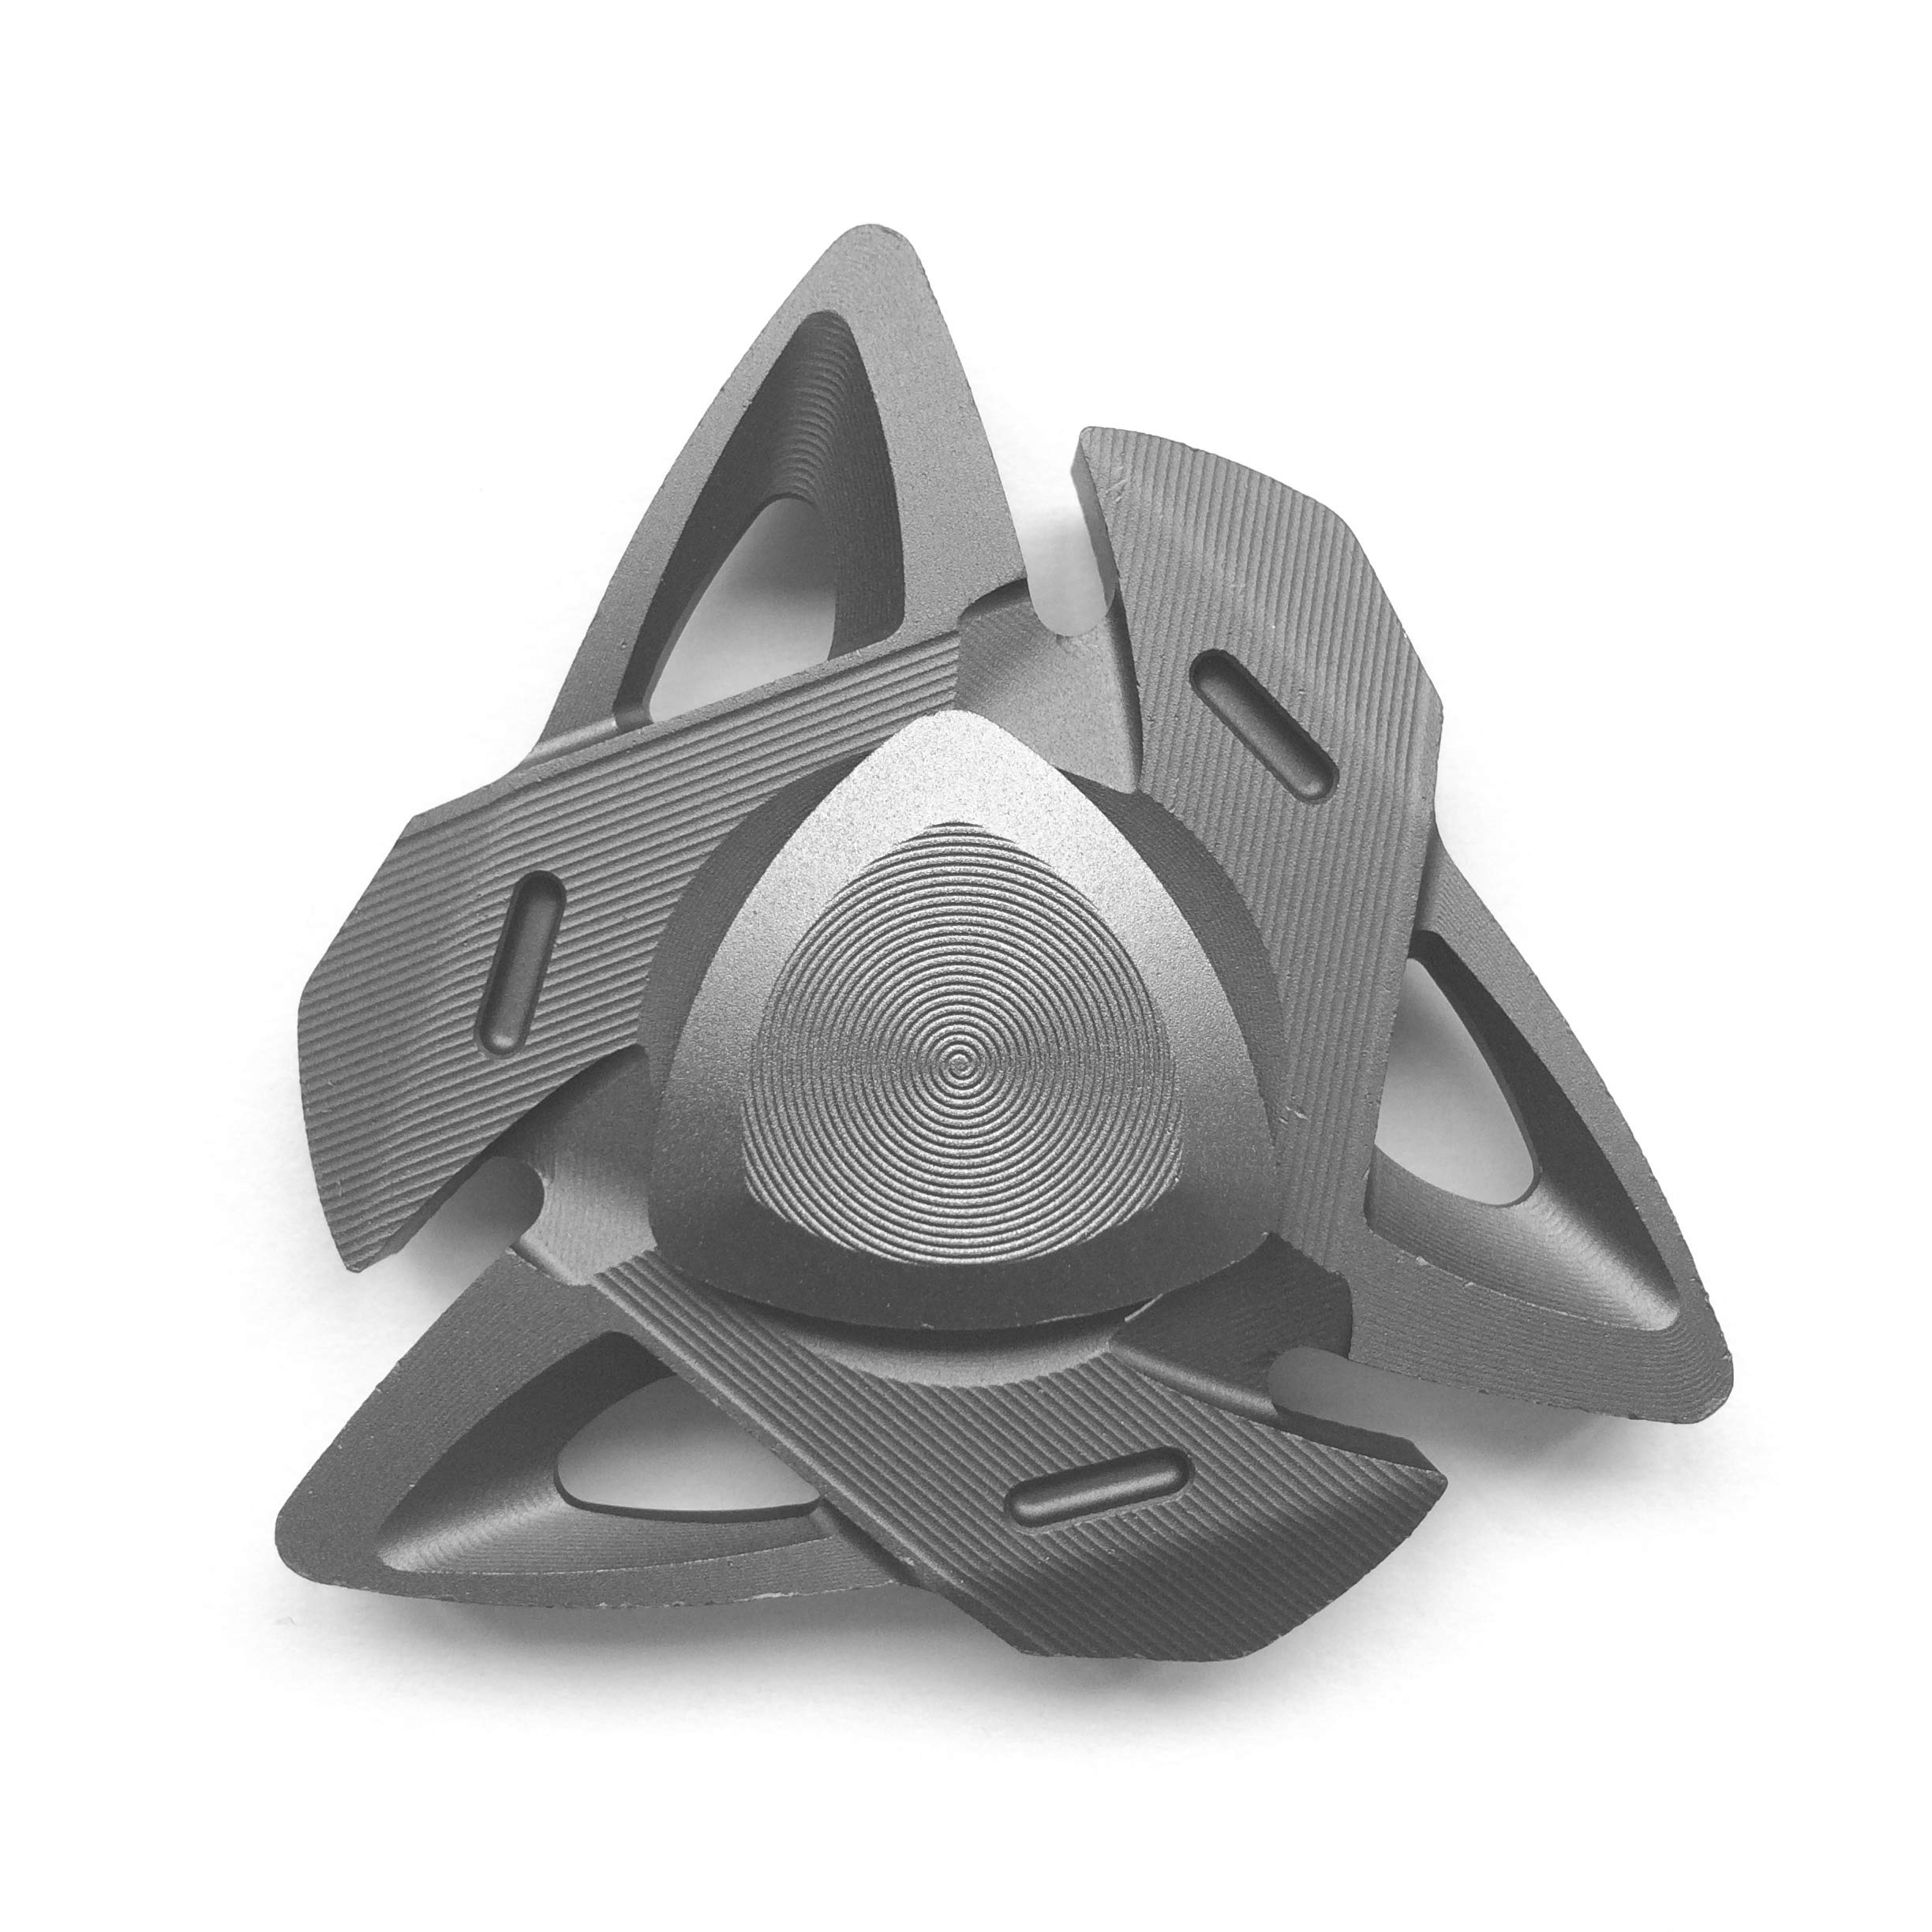 FREELOVE Russia Z Triangle Design Fidget Spinner Toy, Aluminum Alloy, German Precise CNC, Stainless Steel R188 Bearings, 6 Tritium Trachea (Aluminum Alloy Gun Color) by FREELOVE